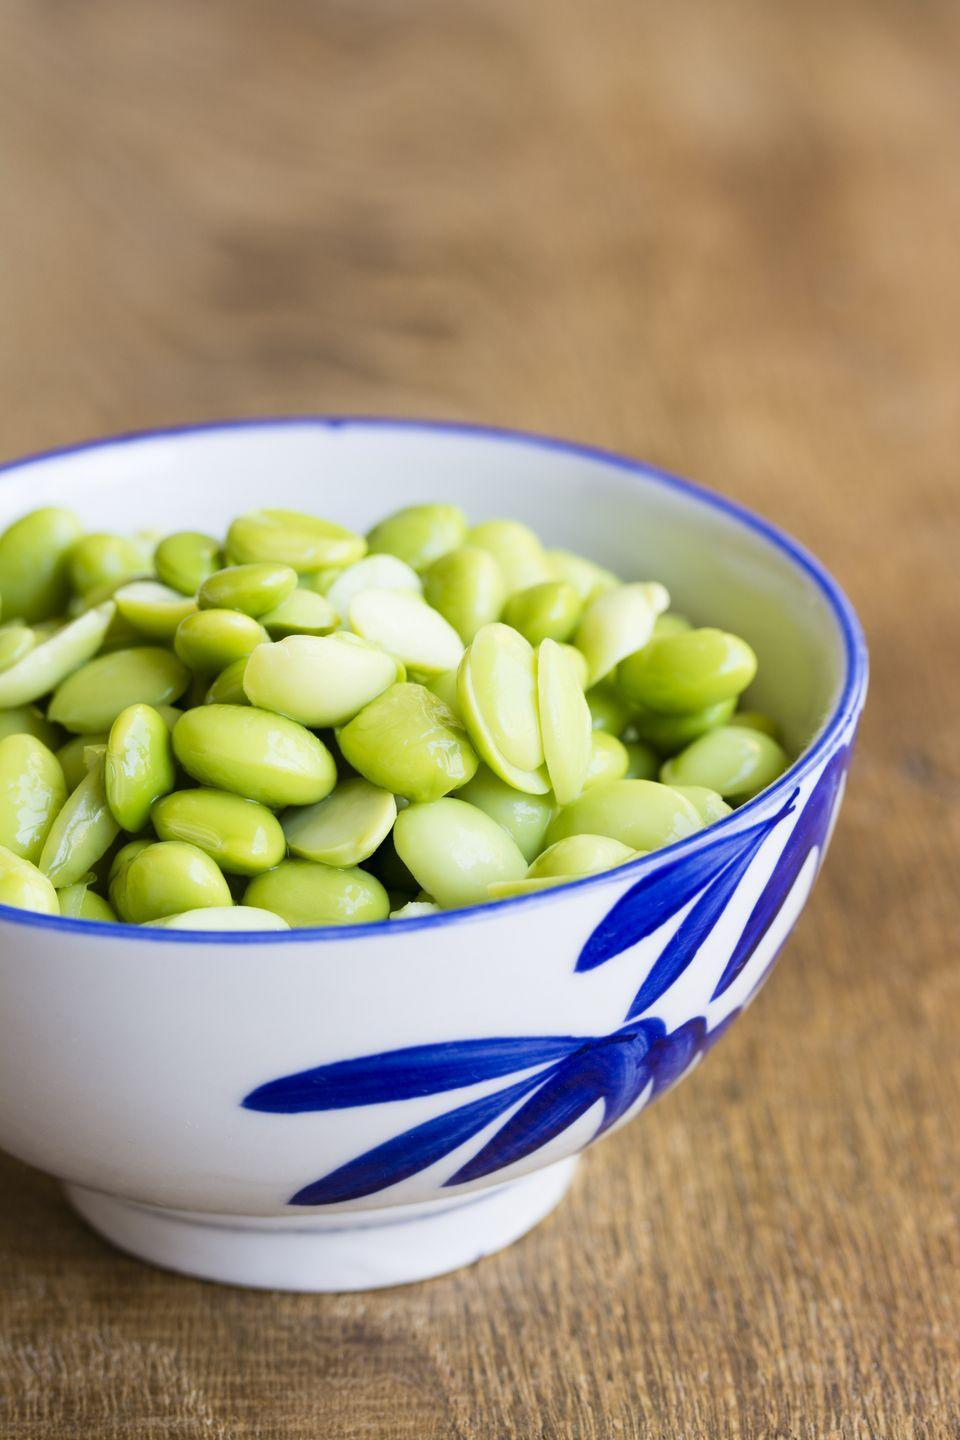 "<p>Edamame packs 9 grams of muscle-building <a href=""https://www.prevention.com/food-nutrition/healthy-eating/a20514733/high-protein-vegetables-and-plant-based-food/"" rel=""nofollow noopener"" target=""_blank"" data-ylk=""slk:plant protein"" class=""link rapid-noclick-resp"">plant protein</a> in just ½ cup for less than 100 calories. These versatile soybeans are also a great source of <a href=""https://www.prevention.com/food-nutrition/a23012367/folate-deficiency-symptoms/"" rel=""nofollow noopener"" target=""_blank"" data-ylk=""slk:folate"" class=""link rapid-noclick-resp"">folate</a> (vitamin B9), <a href=""https://www.prevention.com/food-nutrition/healthy-eating/g20465791/8-foods-that-have-more-iron-than-beef/"" rel=""nofollow noopener"" target=""_blank"" data-ylk=""slk:iron"" class=""link rapid-noclick-resp"">iron</a>, vitamins C and A, and potassium for your heart.<strong><br></strong></p><p><strong>Try it:</strong> Roast some with flaky sea salt or perk up your favorite pasta dish with a handful (we love this <a href=""https://www.prevention.com/food-nutrition/recipes/a20523162/lemony-shells-with-edamame/"" rel=""nofollow noopener"" target=""_blank"" data-ylk=""slk:lemony shells with edamame recipe"" class=""link rapid-noclick-resp"">lemony shells with edamame recipe</a>).</p>"